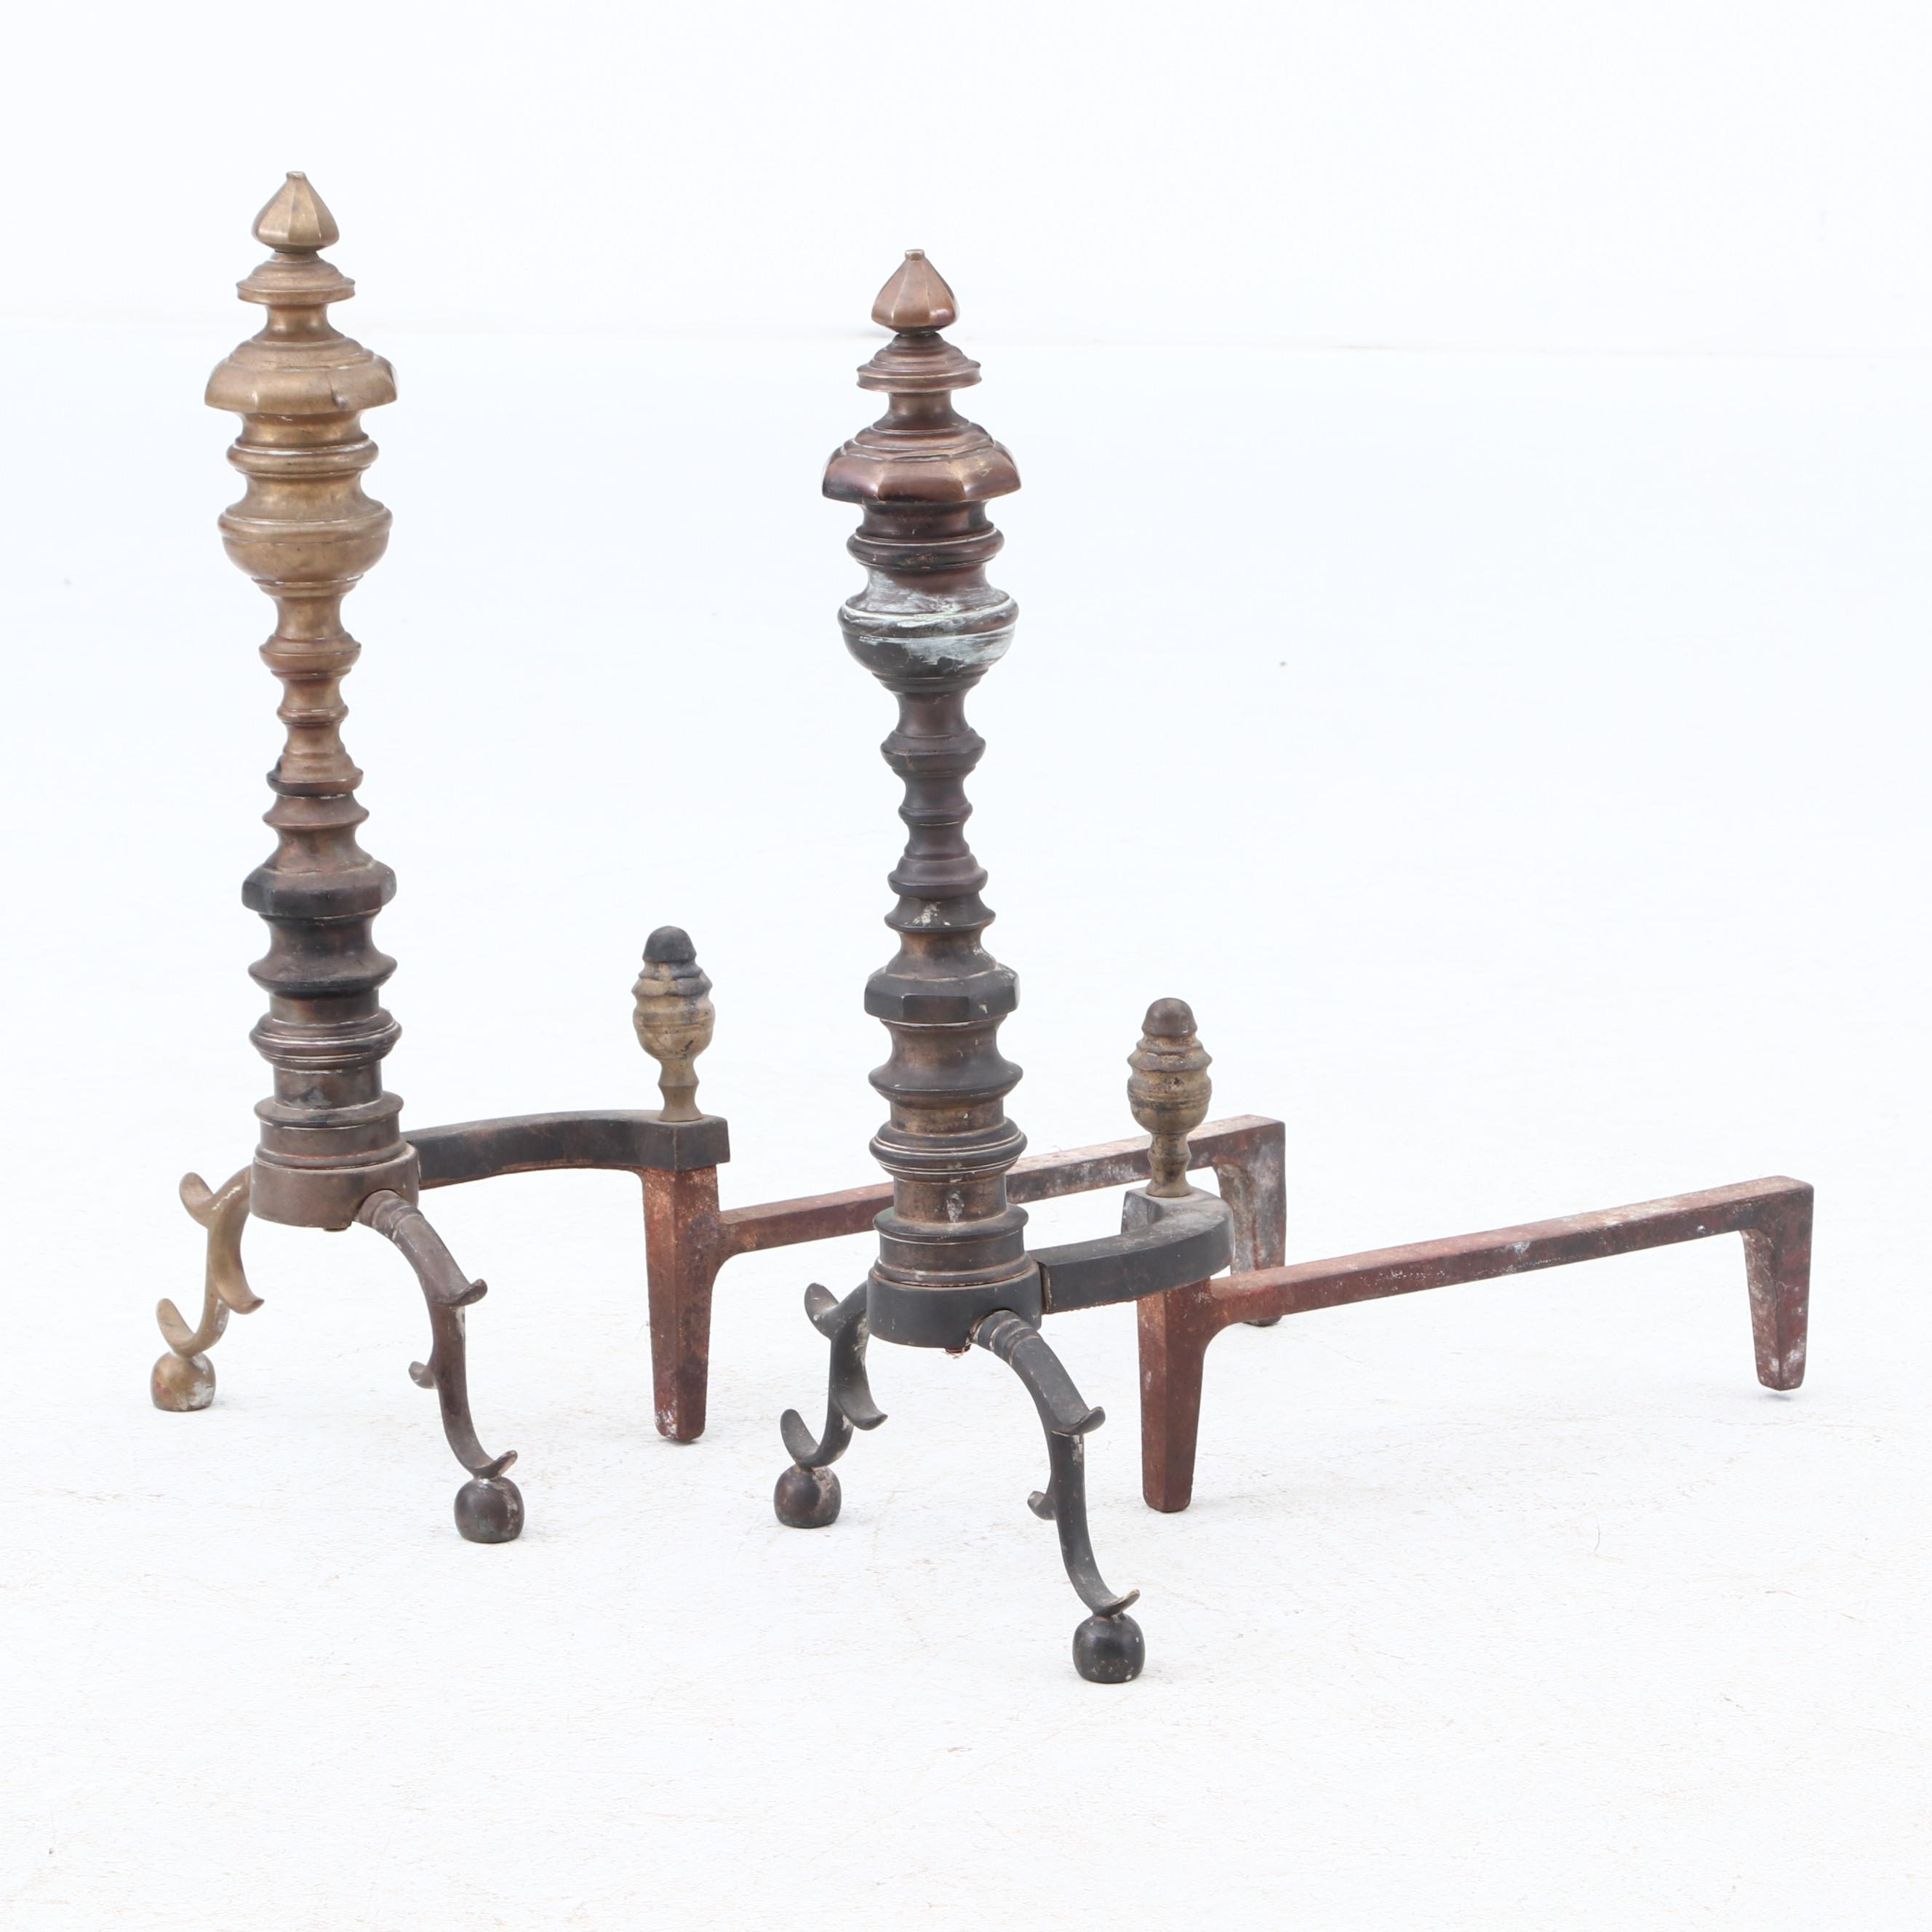 Marvin Co. Brass Turret Top Andirons, Early 20th Century